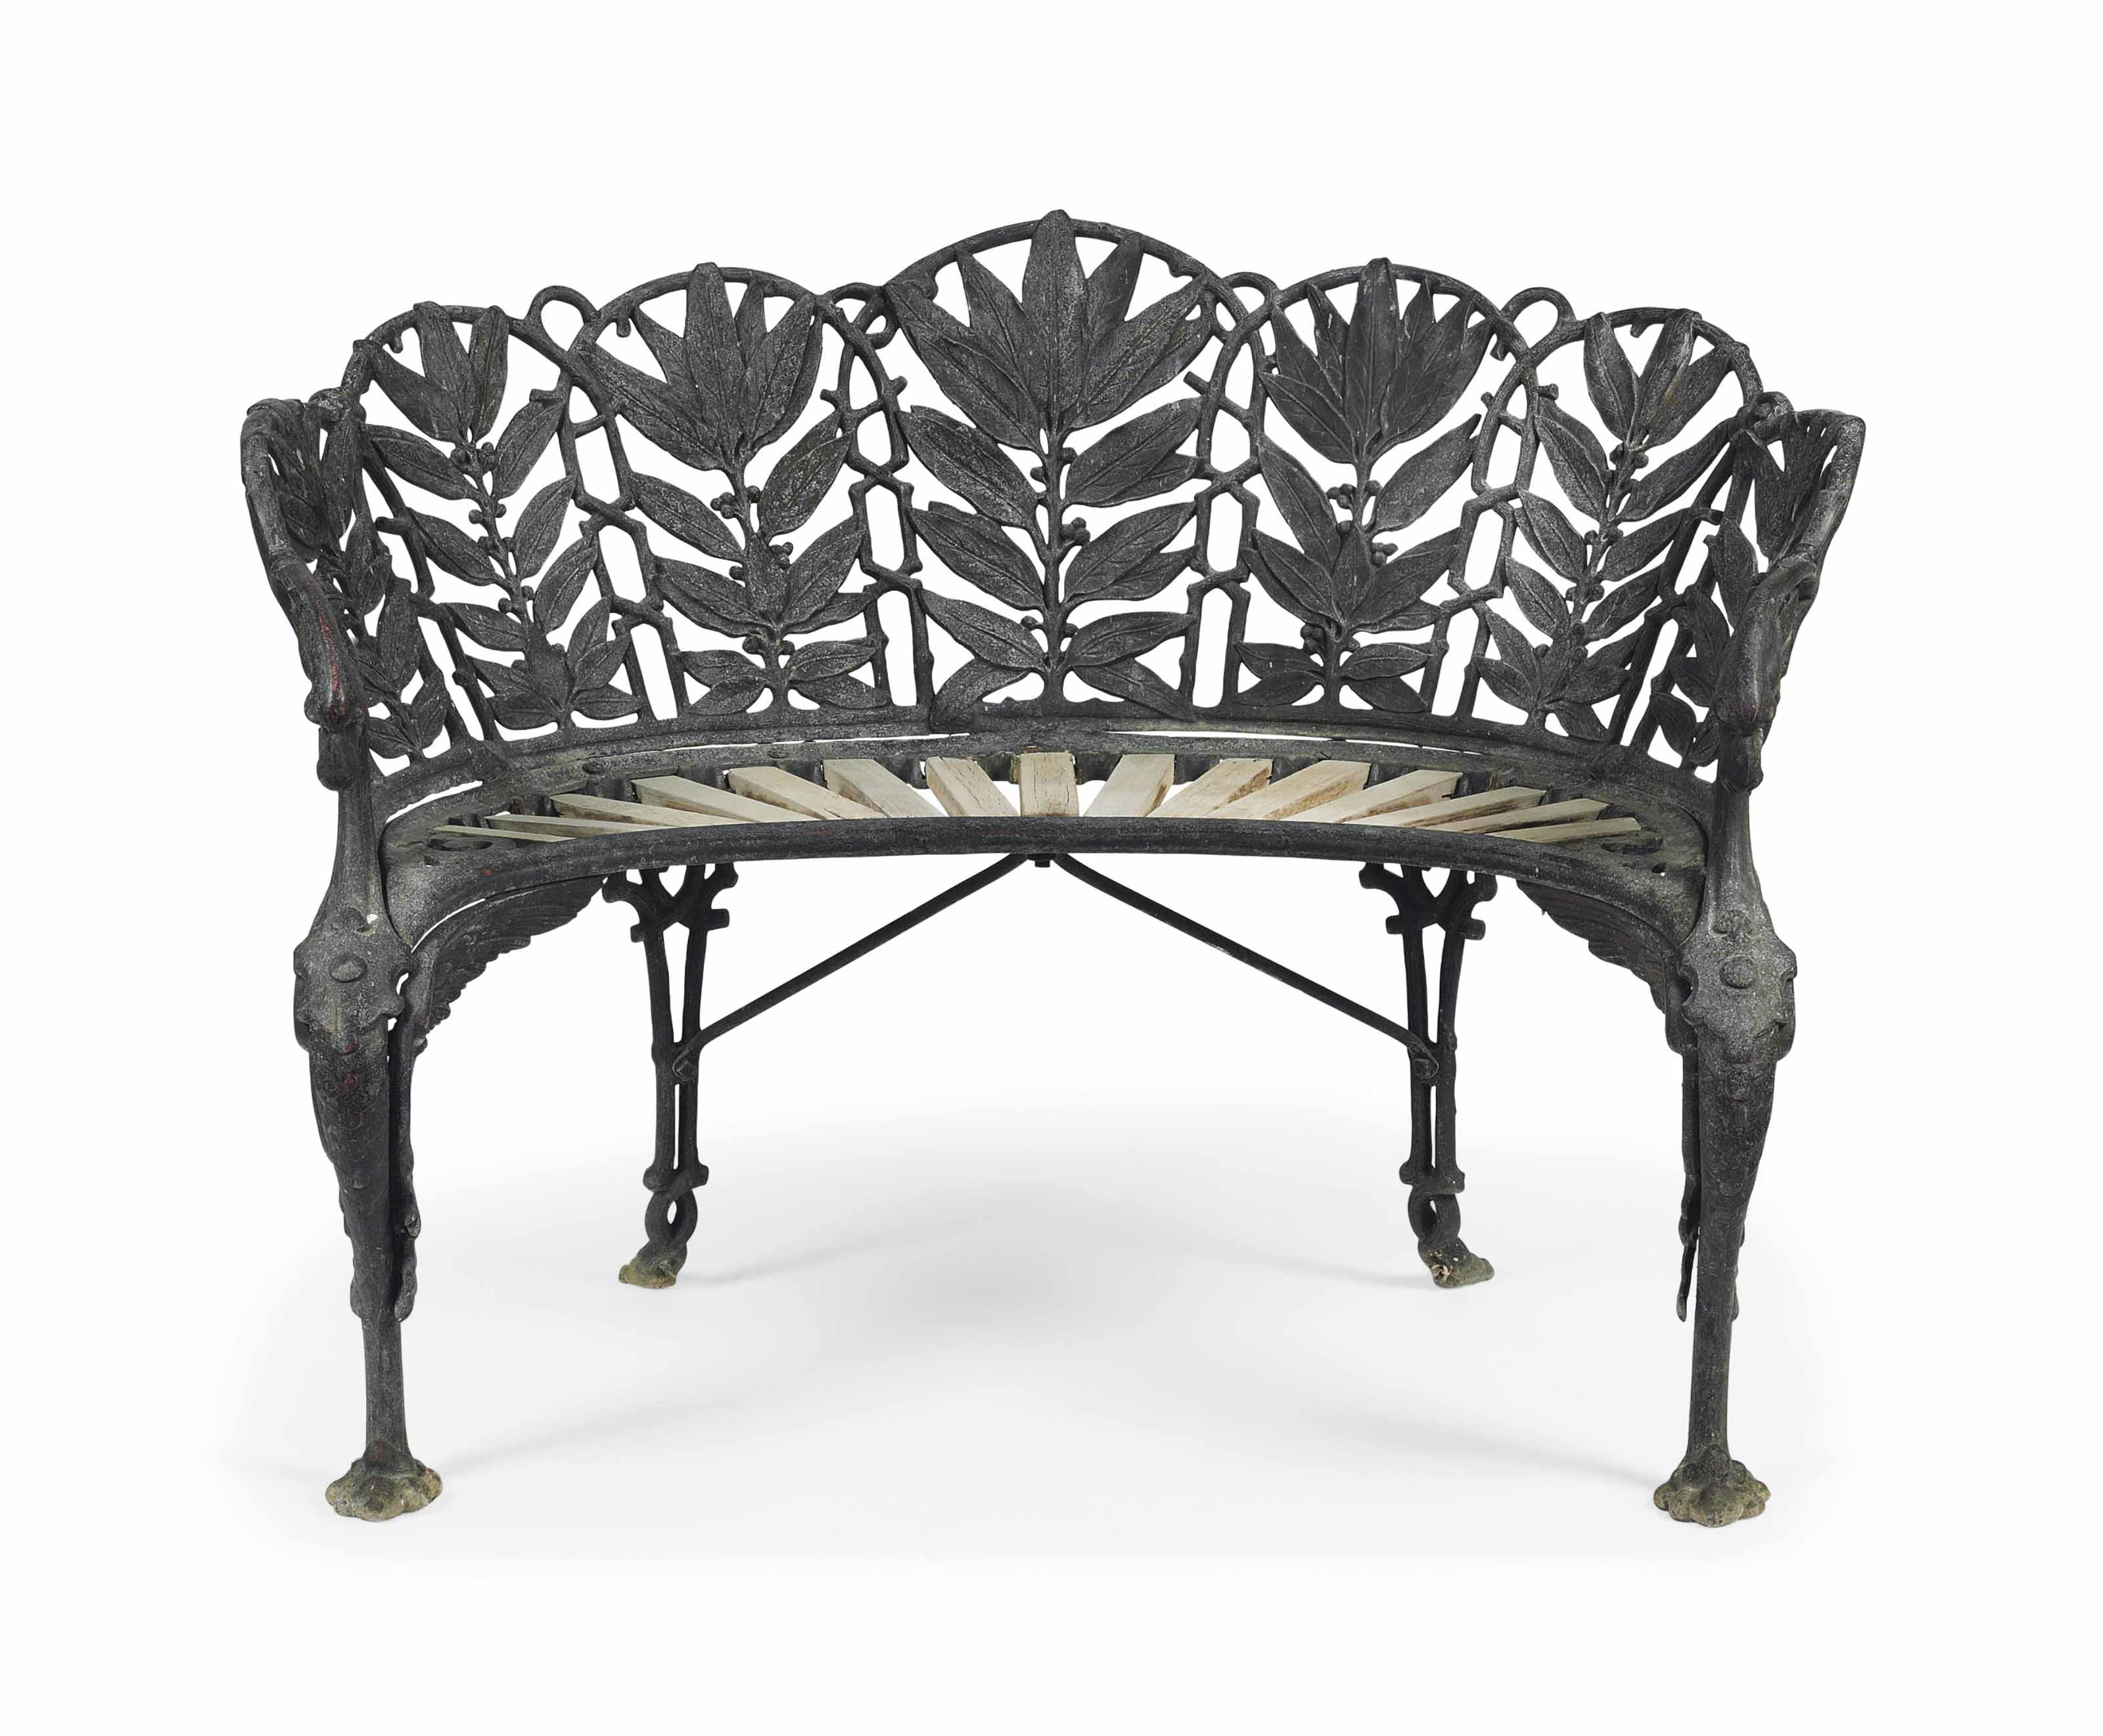 A VICTORIAN PAINTED CAST-IRON 'LAURAL' PATTERN SEAT